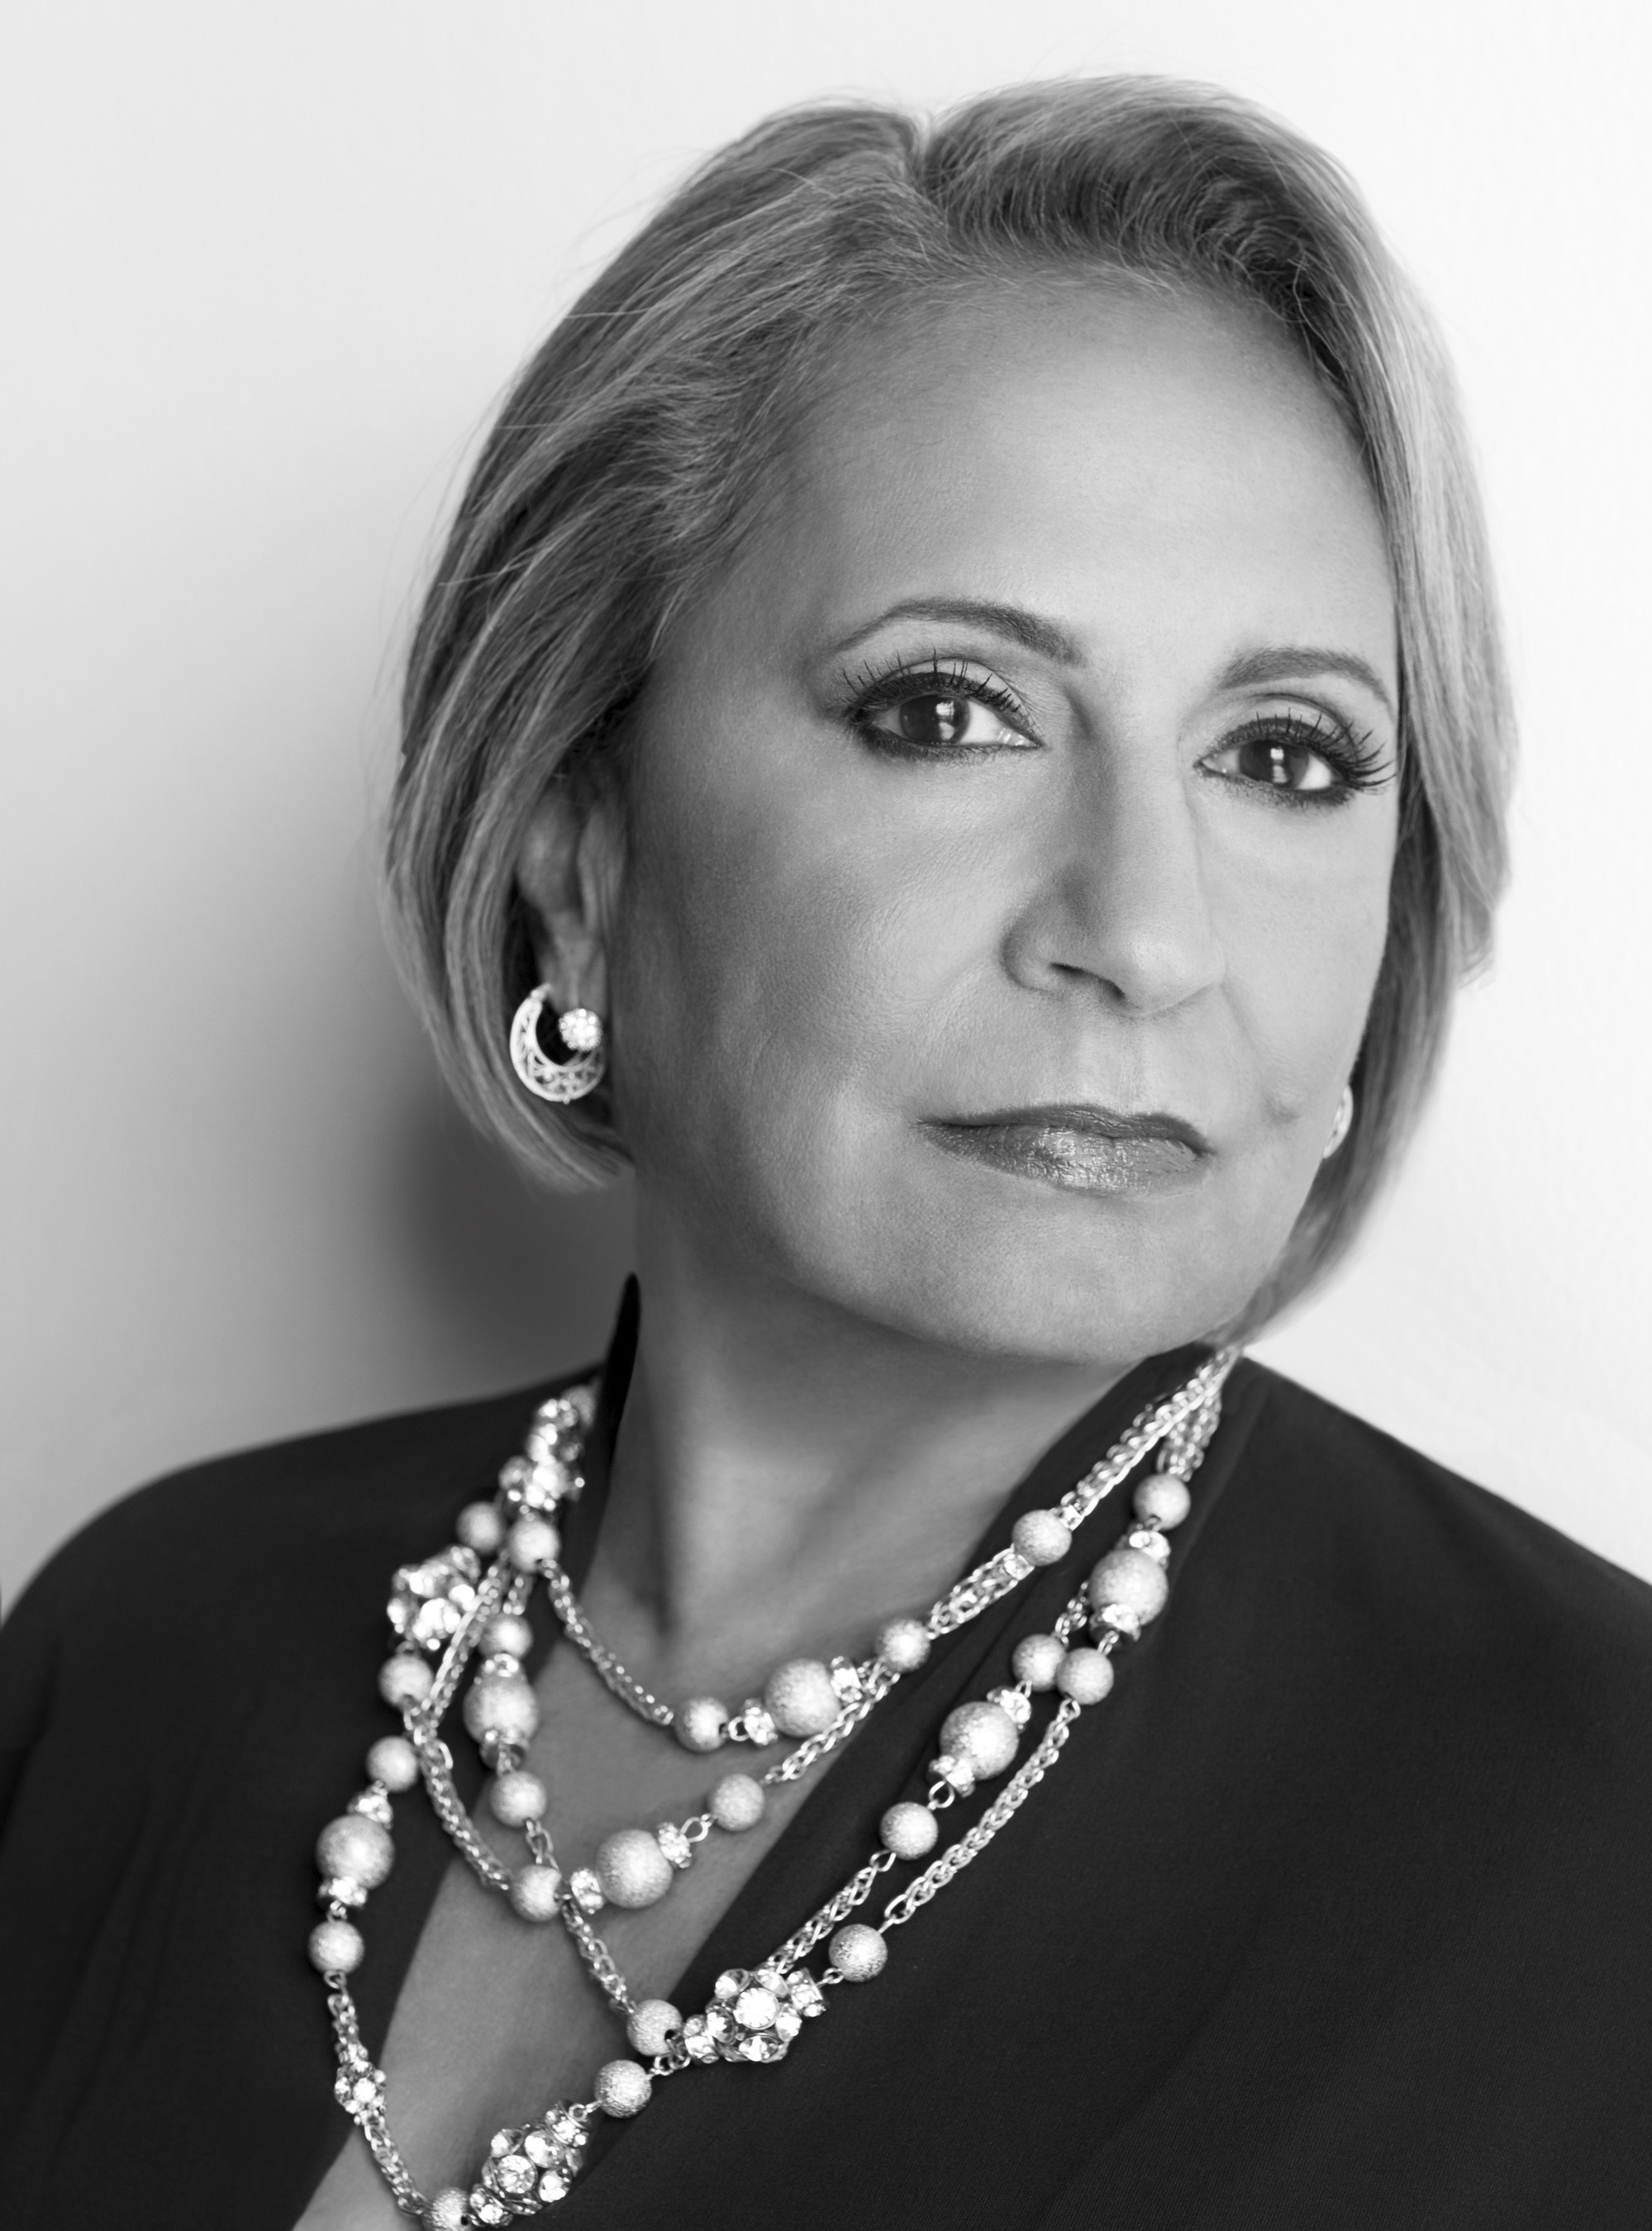 Radio One, Inc. Congratulates Founder and Chairperson Cathy Hughes as New Namesake for Howard University's School of Communications